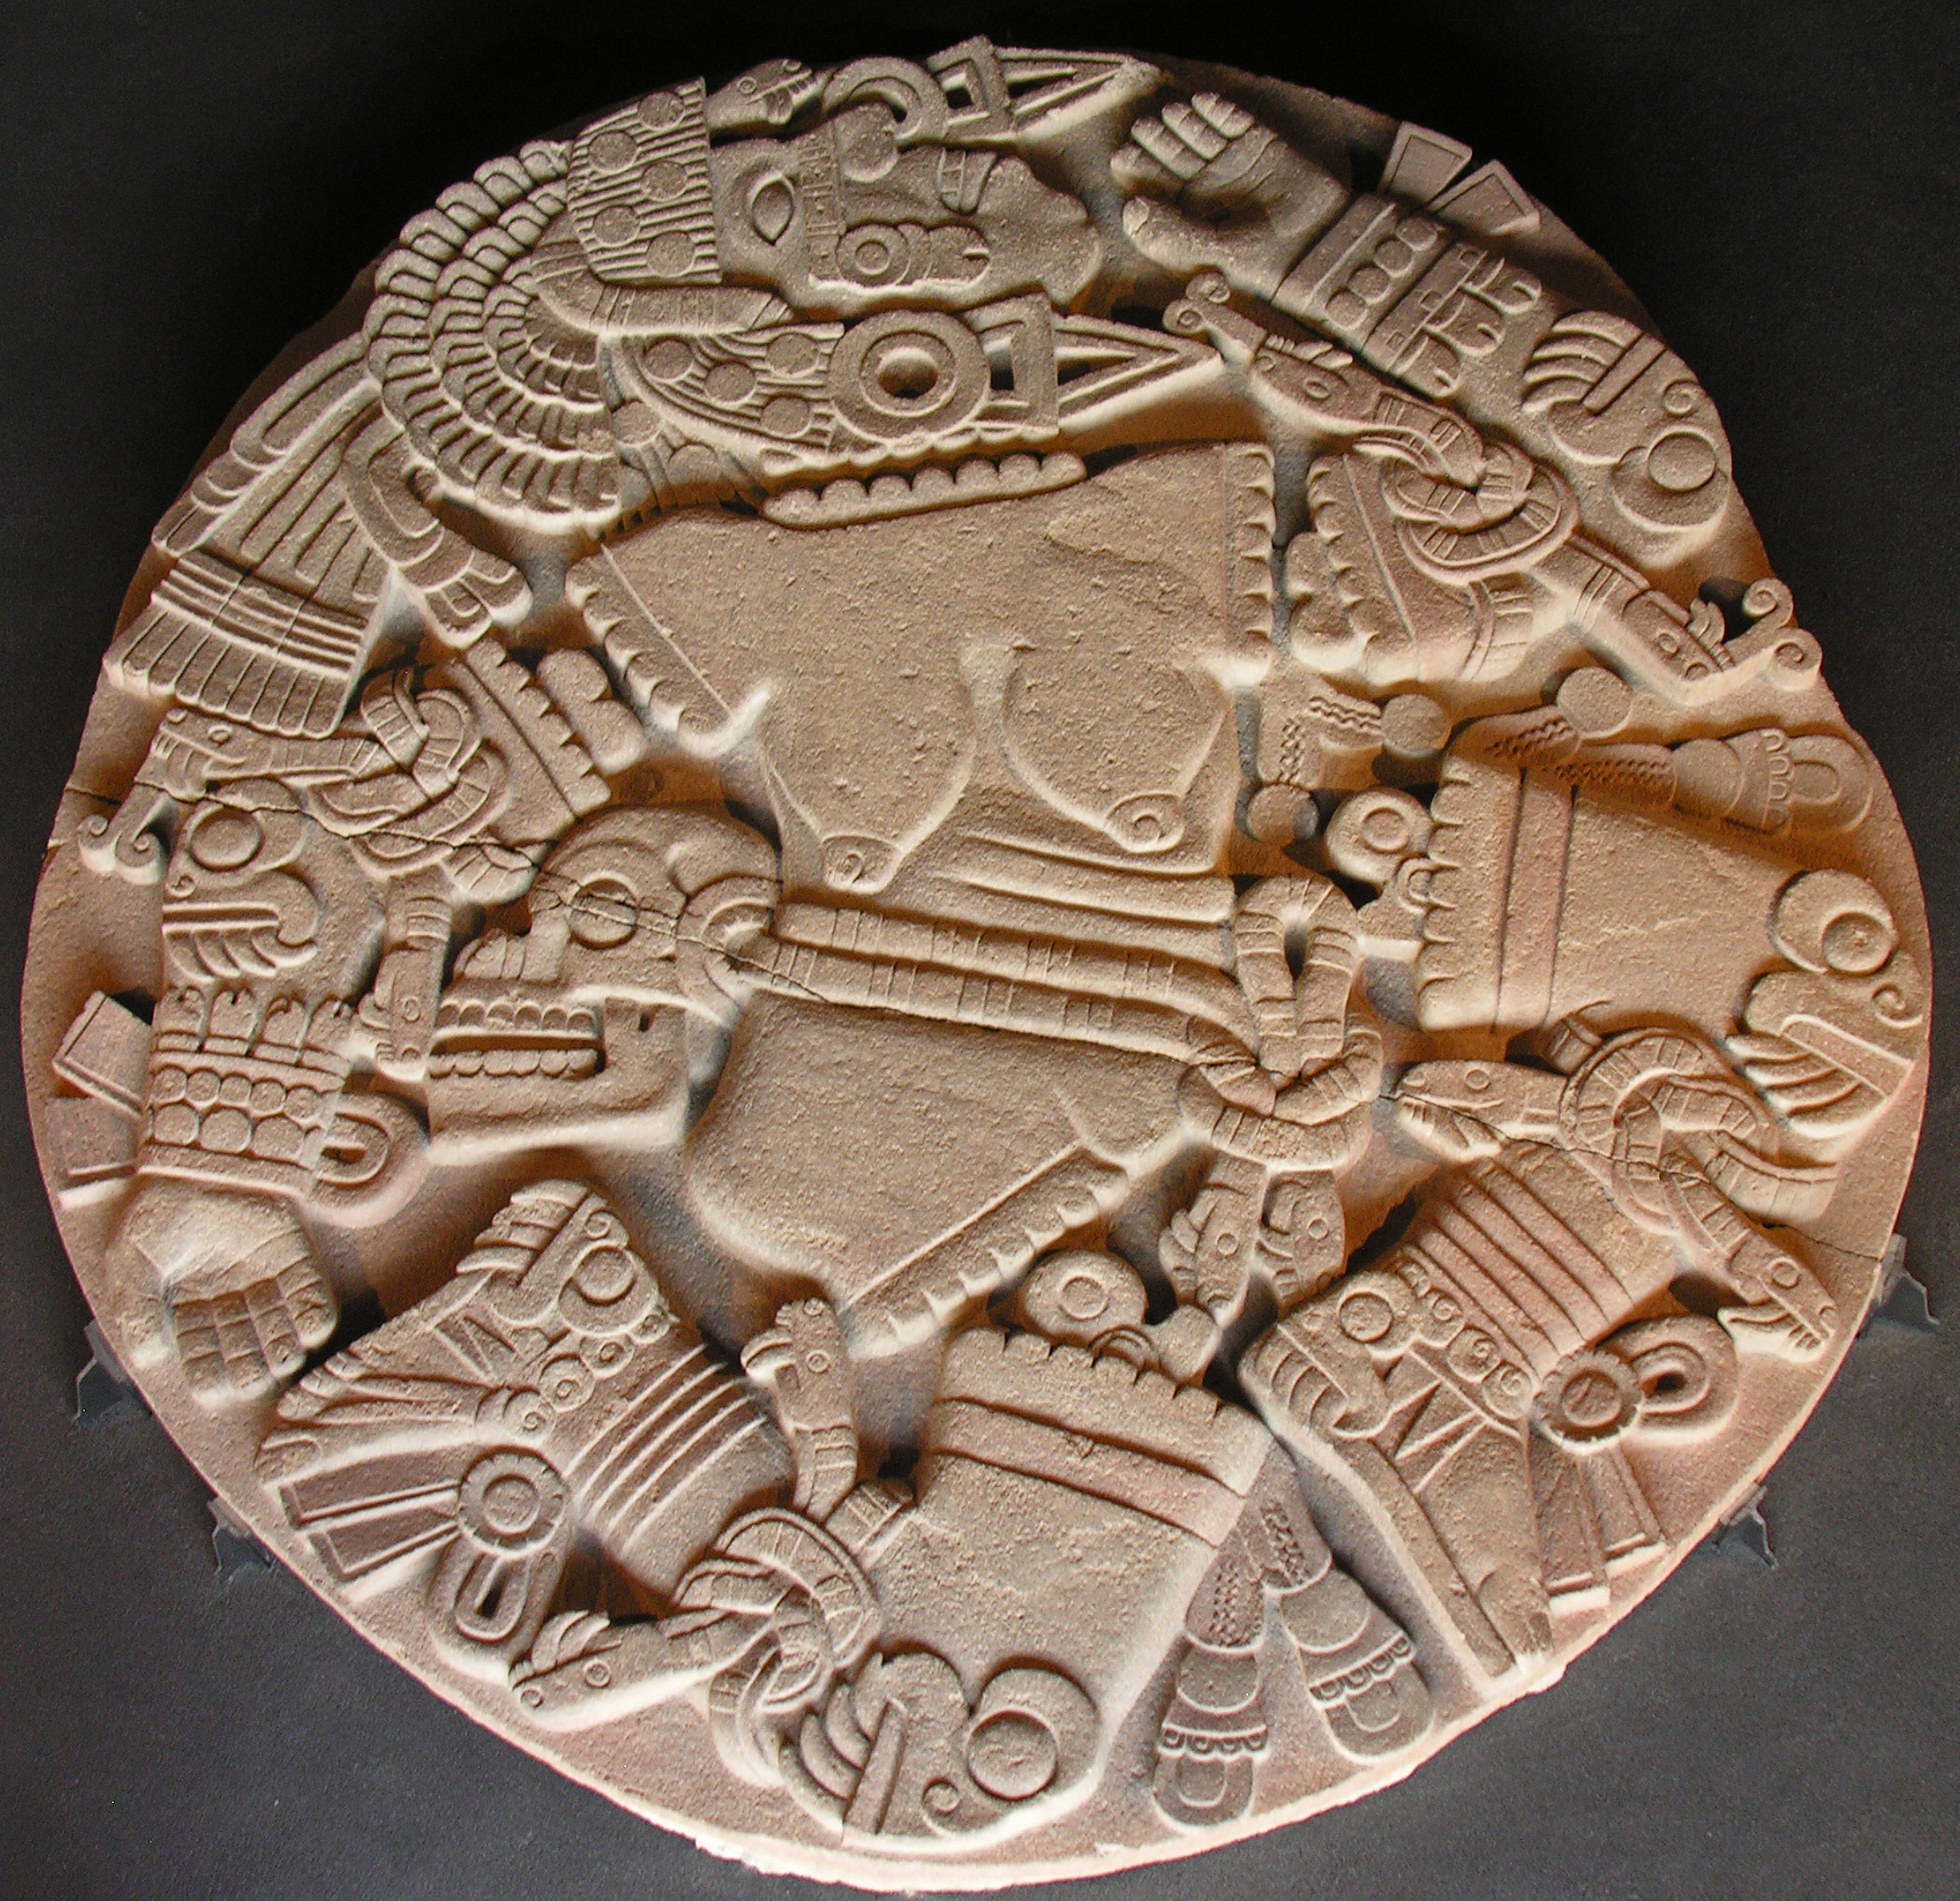 Aztec mysterious violent ancient civilization cool